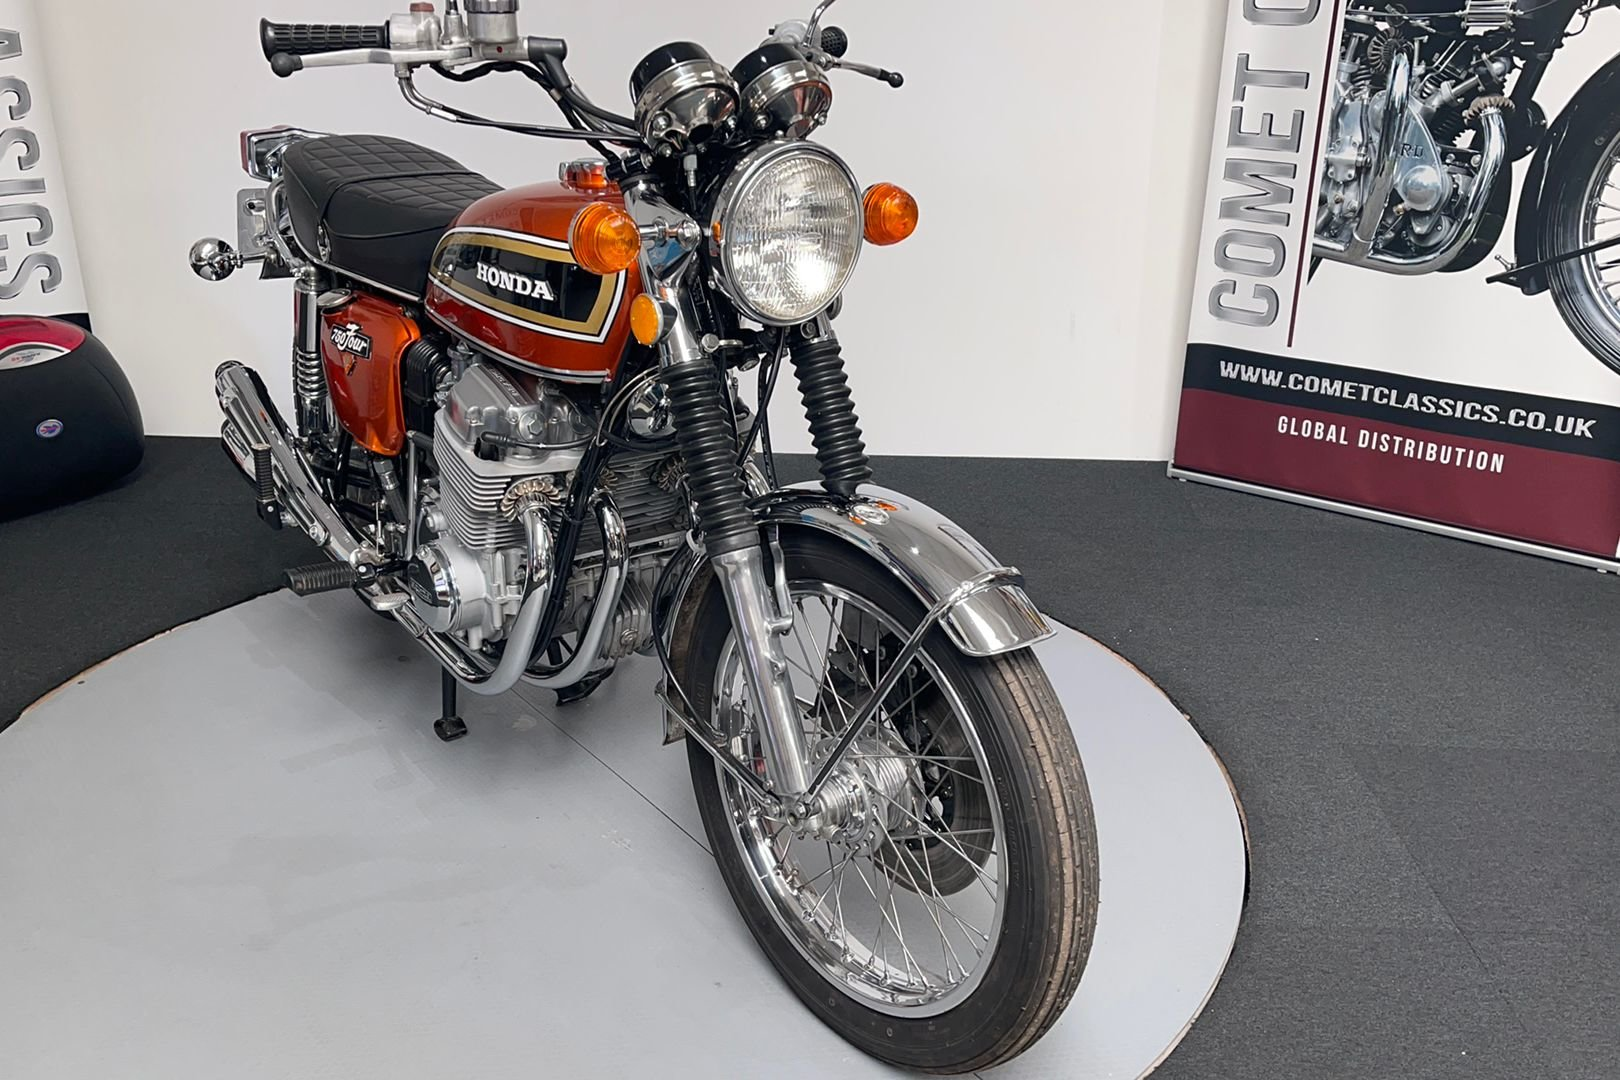 Honda 7504 1973 For Sale (picture 4 of 10)